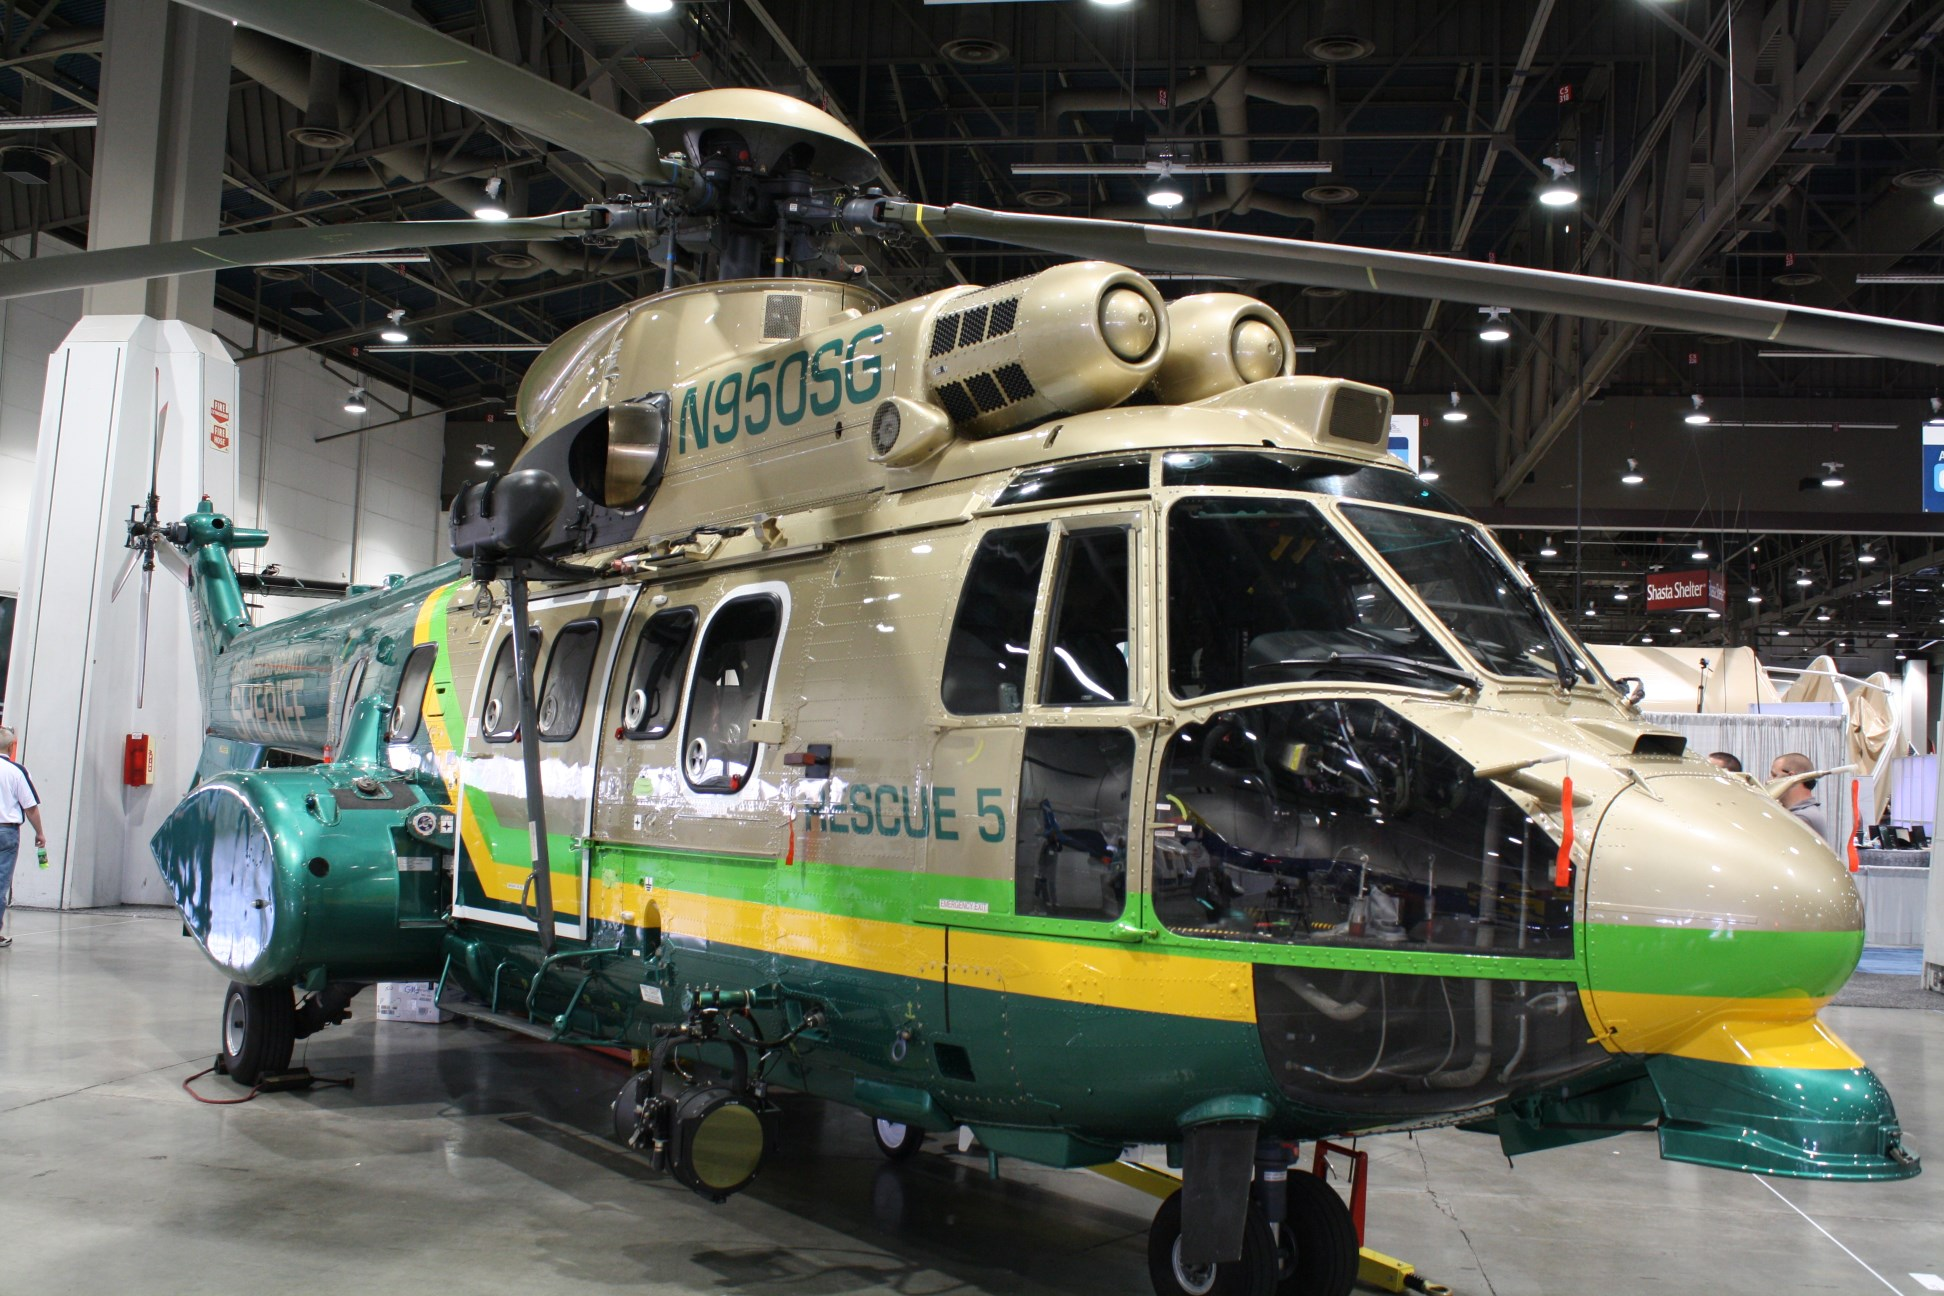 An LASD Aero Bureau AS332L1 Super Puma rescue helicopter on display at HAI Las Vegas, 2013. Photo by Darryl Kimball